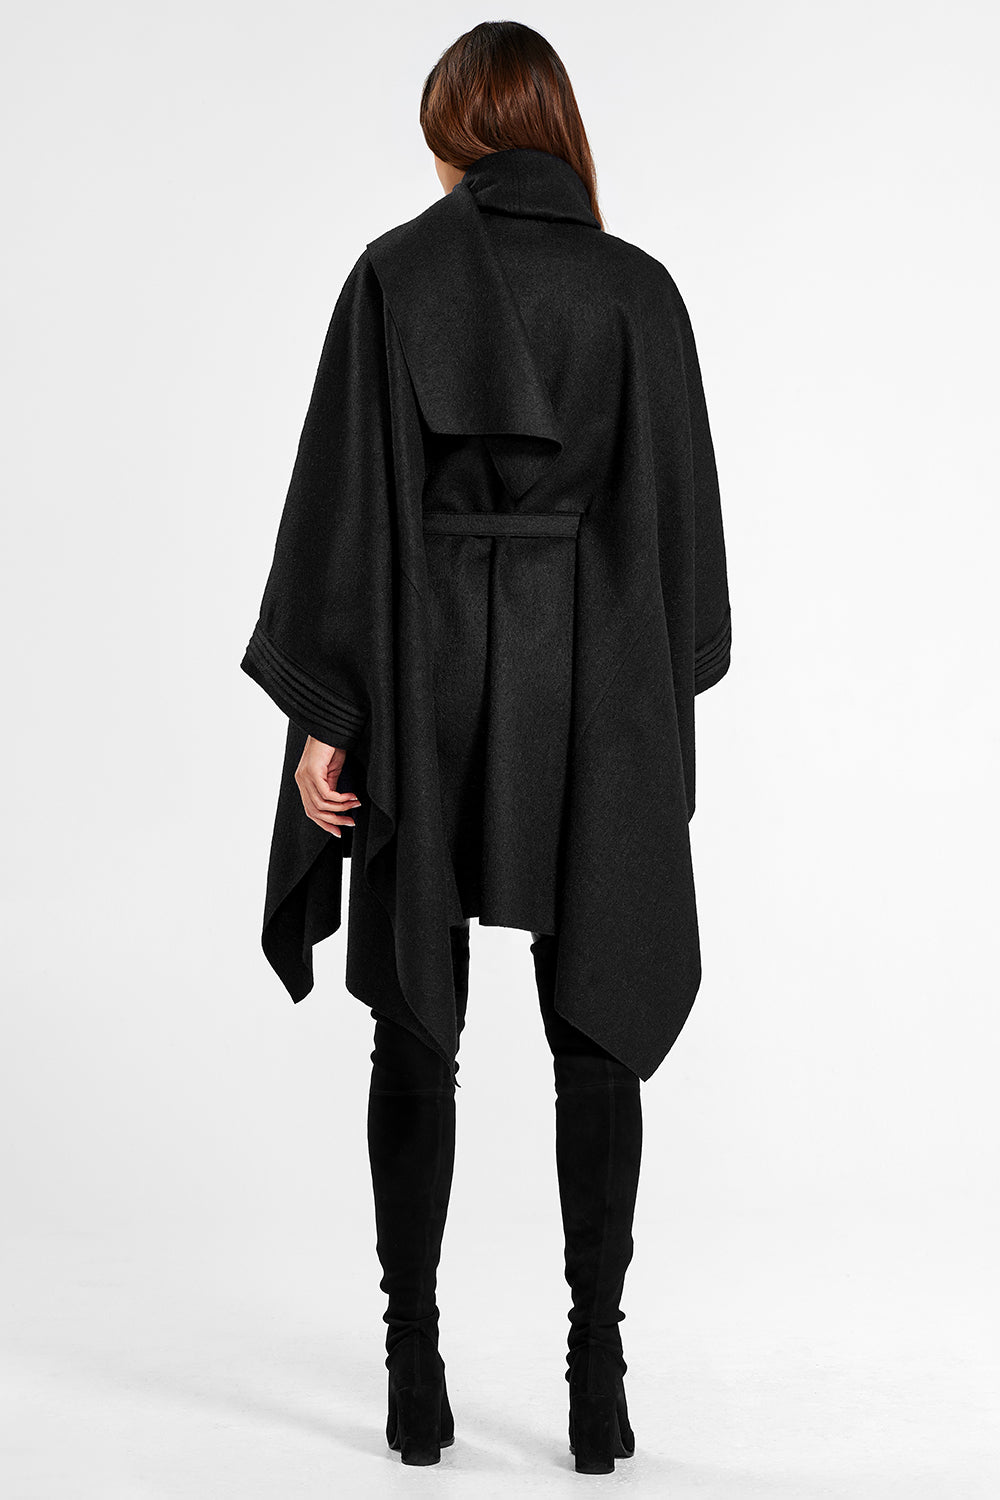 Sentaler Poncho with Shawl Collar and Belt featured in Superfine Alpaca and available in Black. Seen from back.